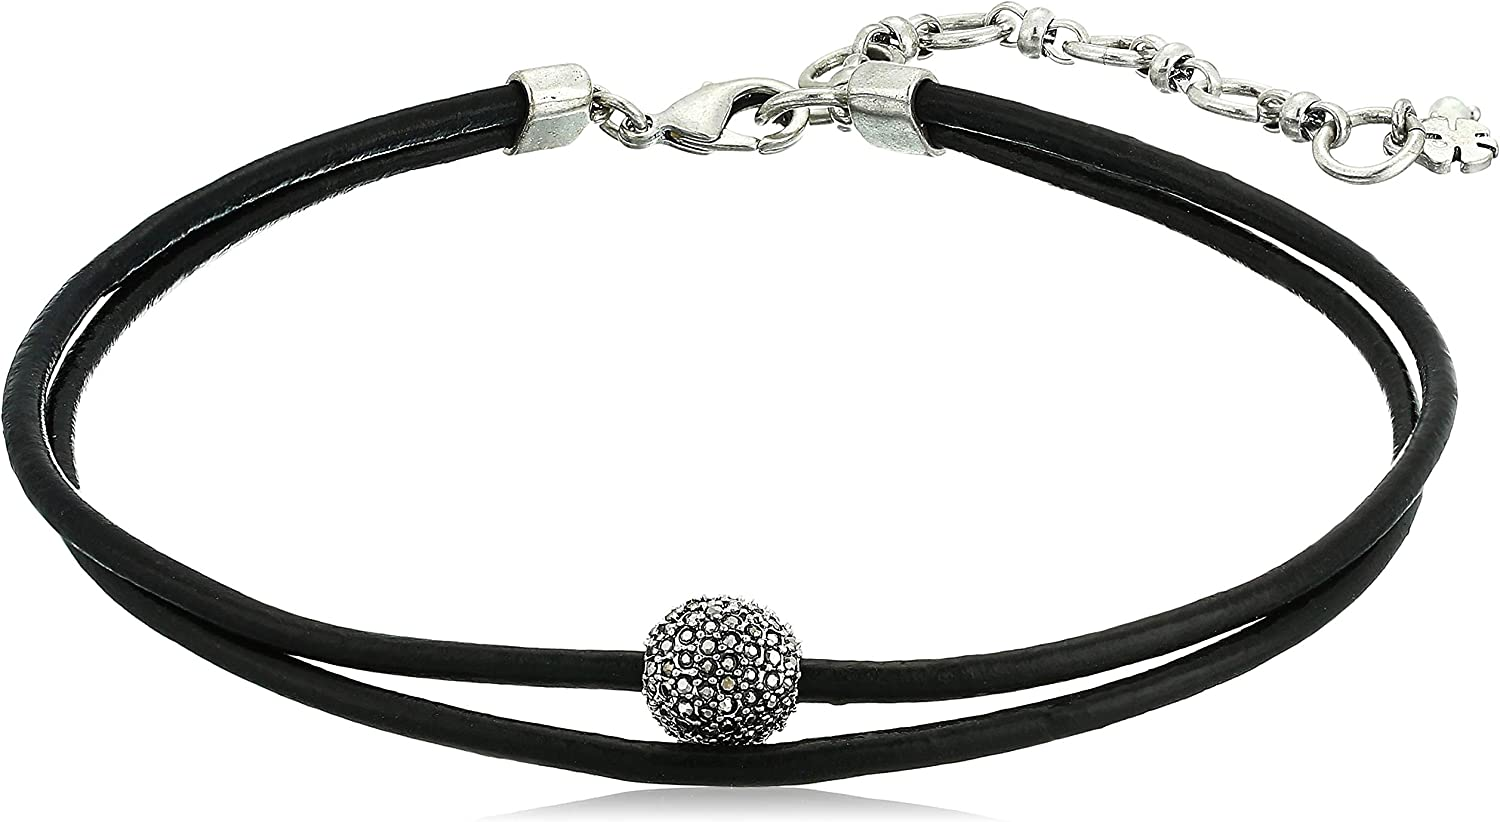 CUTE STRETCHY WIDE DIAMOND LAYER  ADJUSTABLE CHOKER NECKLACE BLACK LABEL